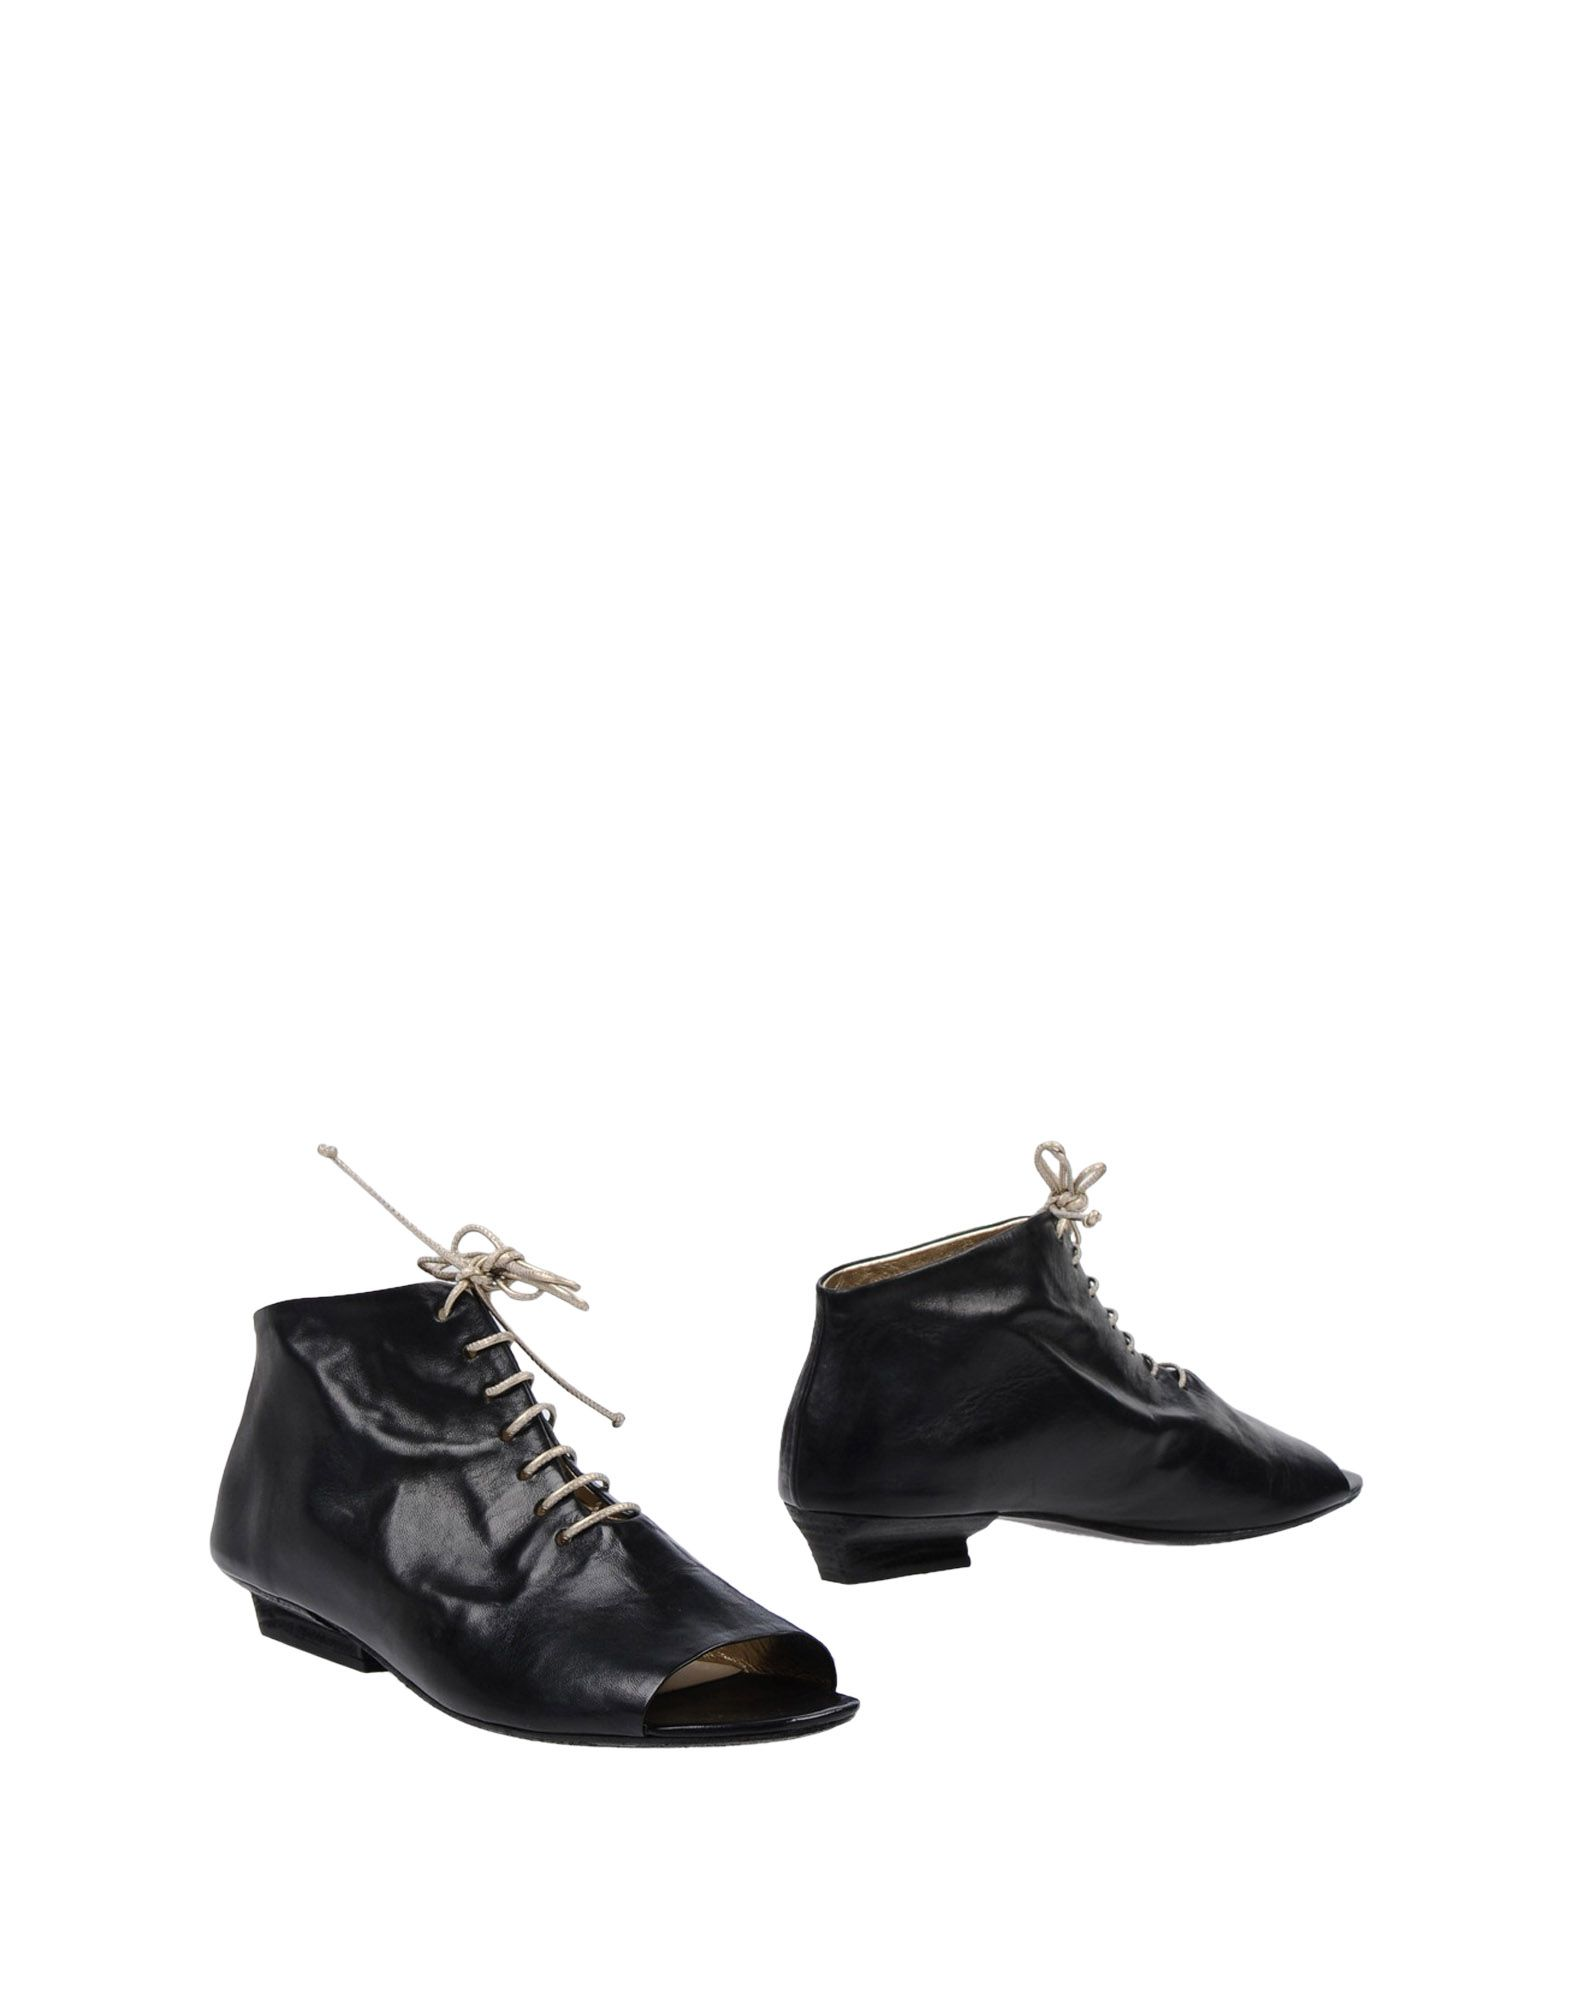 Marsèll Ankle Boot - Women Marsèll Ankle Boots online on 11458389MF  United Kingdom - 11458389MF on 91a05e